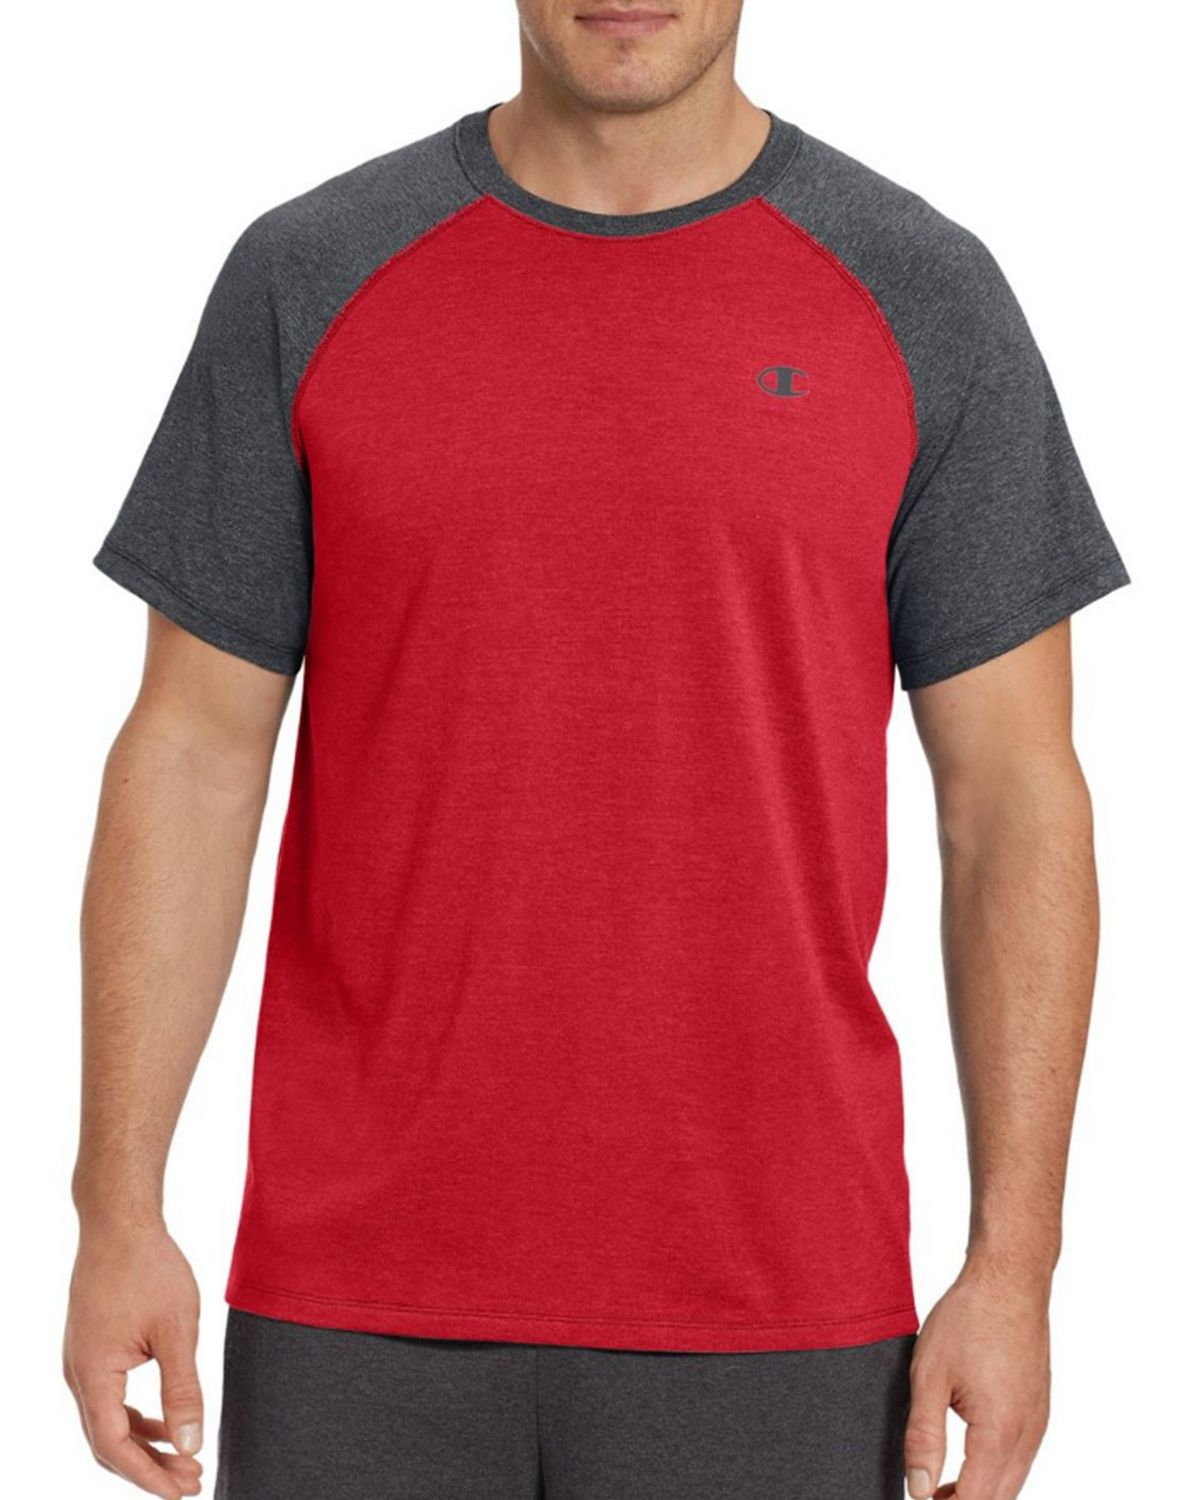 Champion T8822 Vapor Mens Tee - Granite Heather/Oxford Grey - L T8822